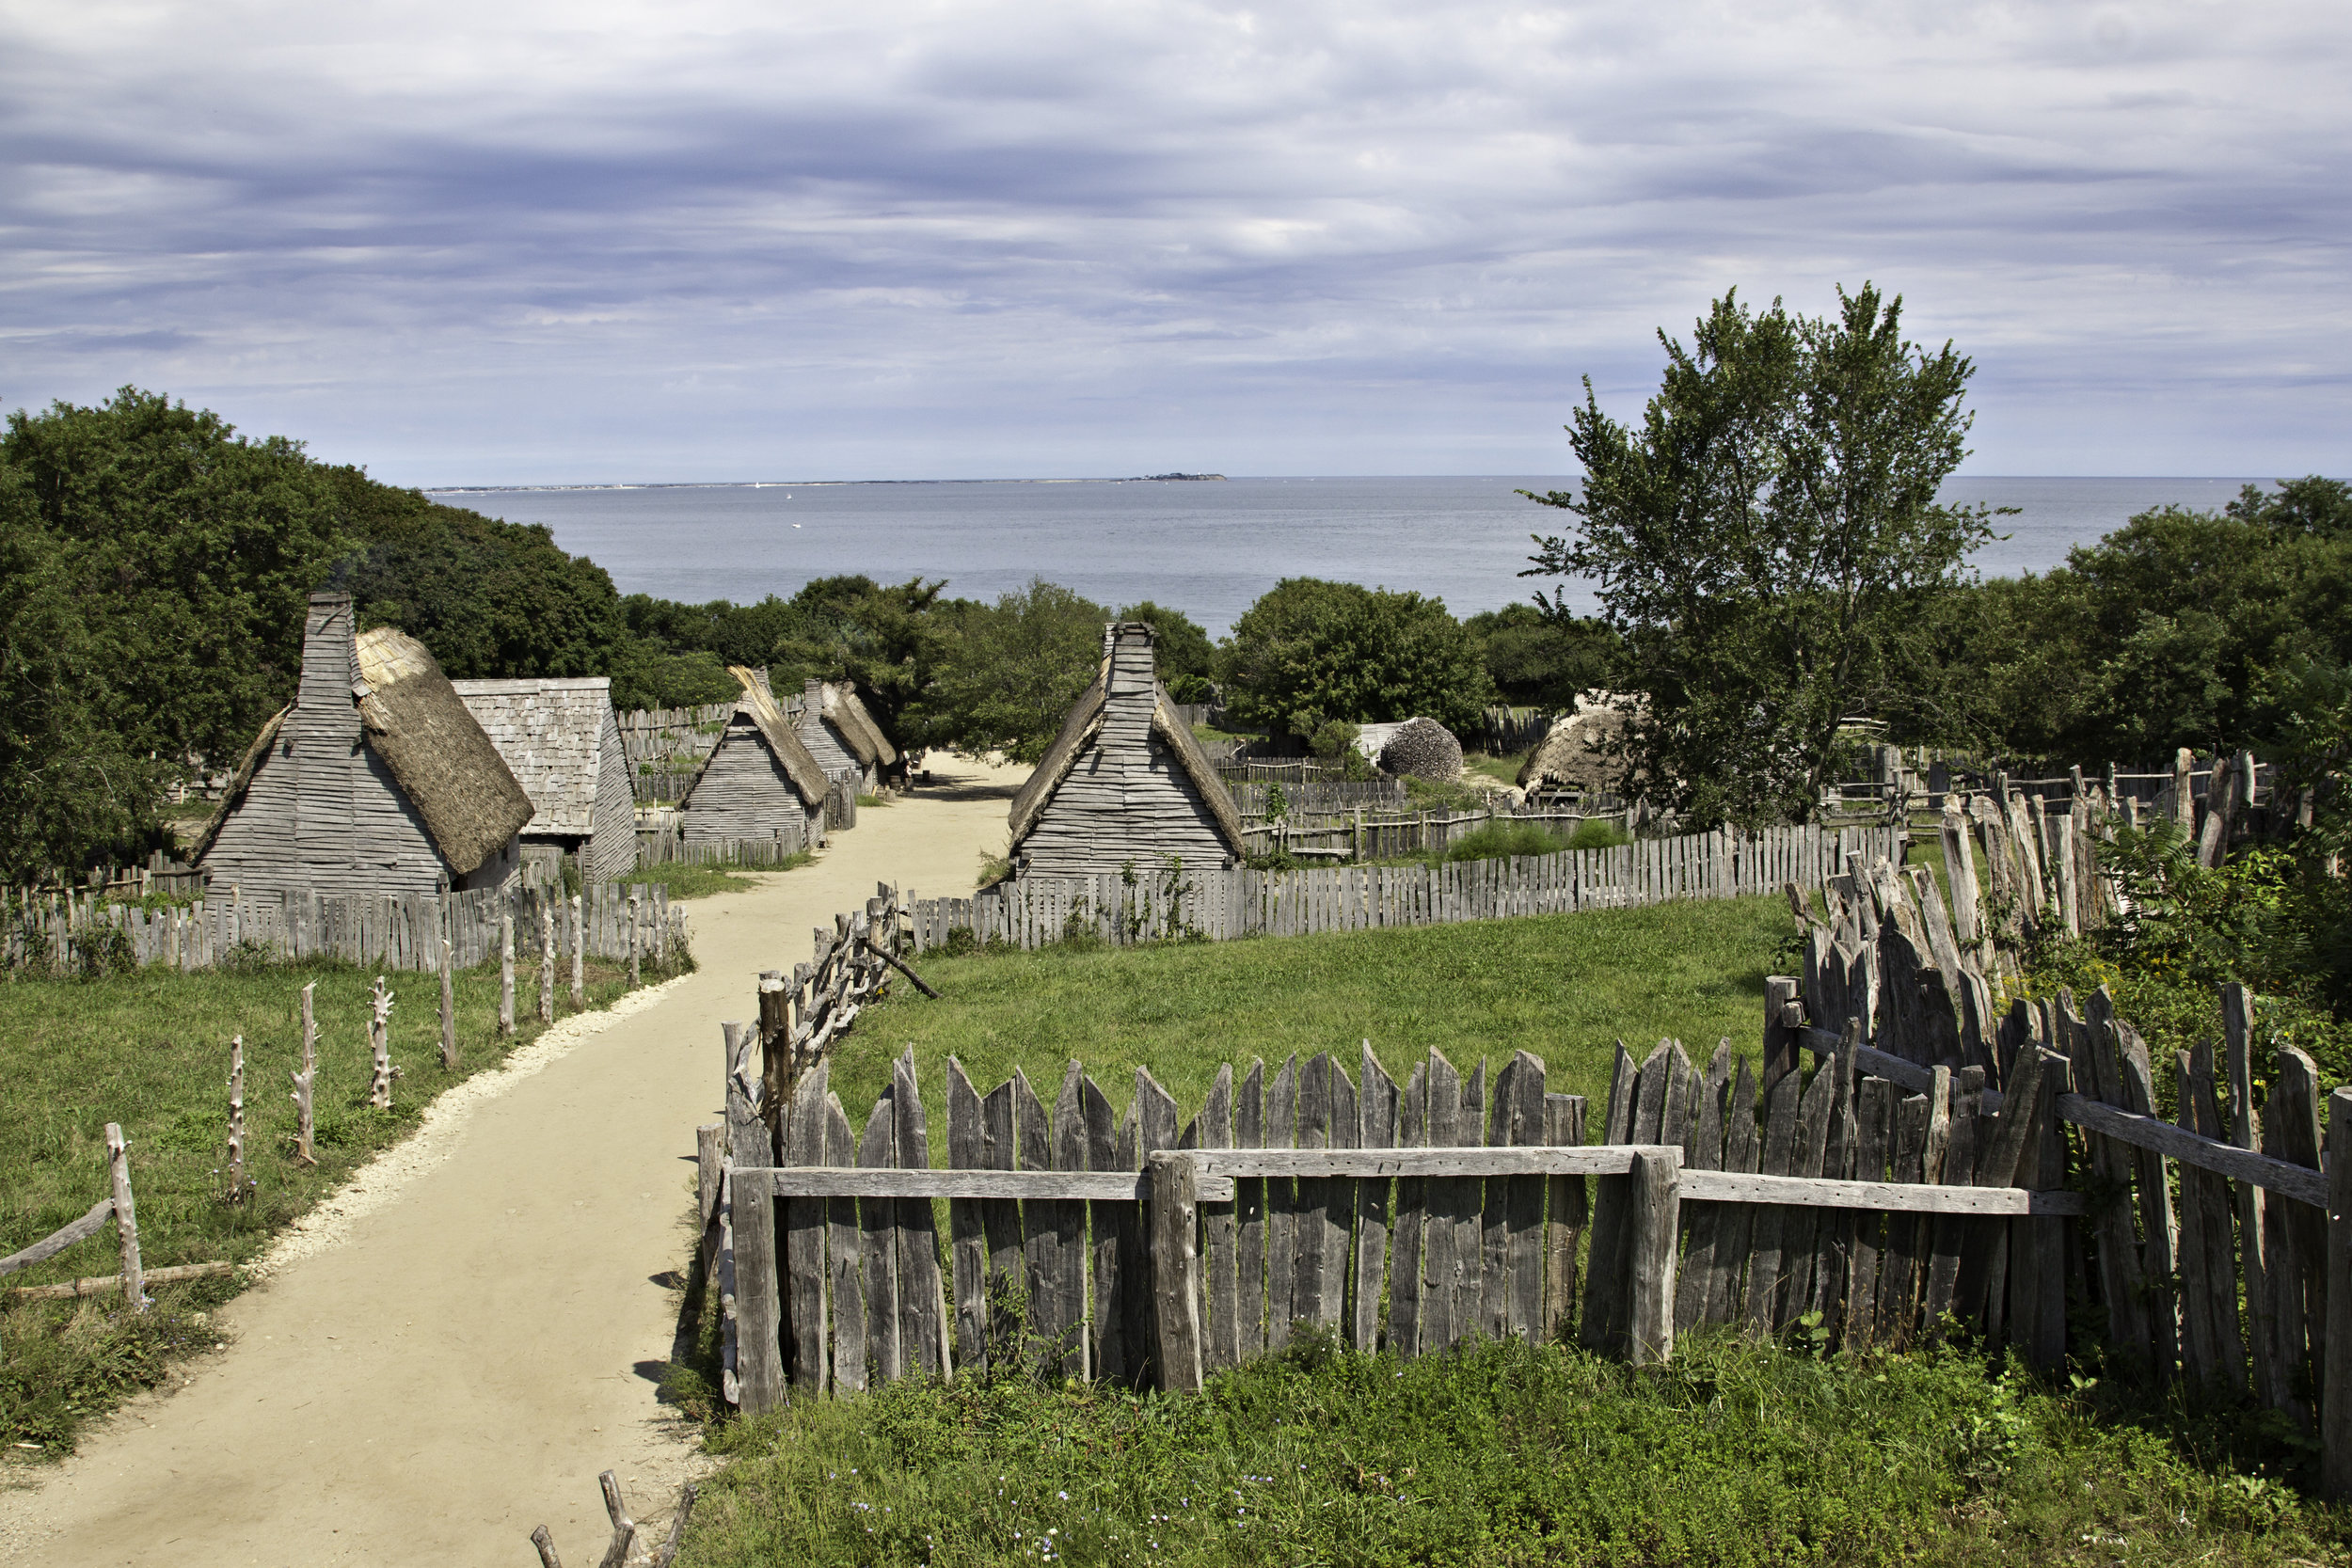 Today you can visit a replica of the Pilgrim's village at Plymouth, MA.